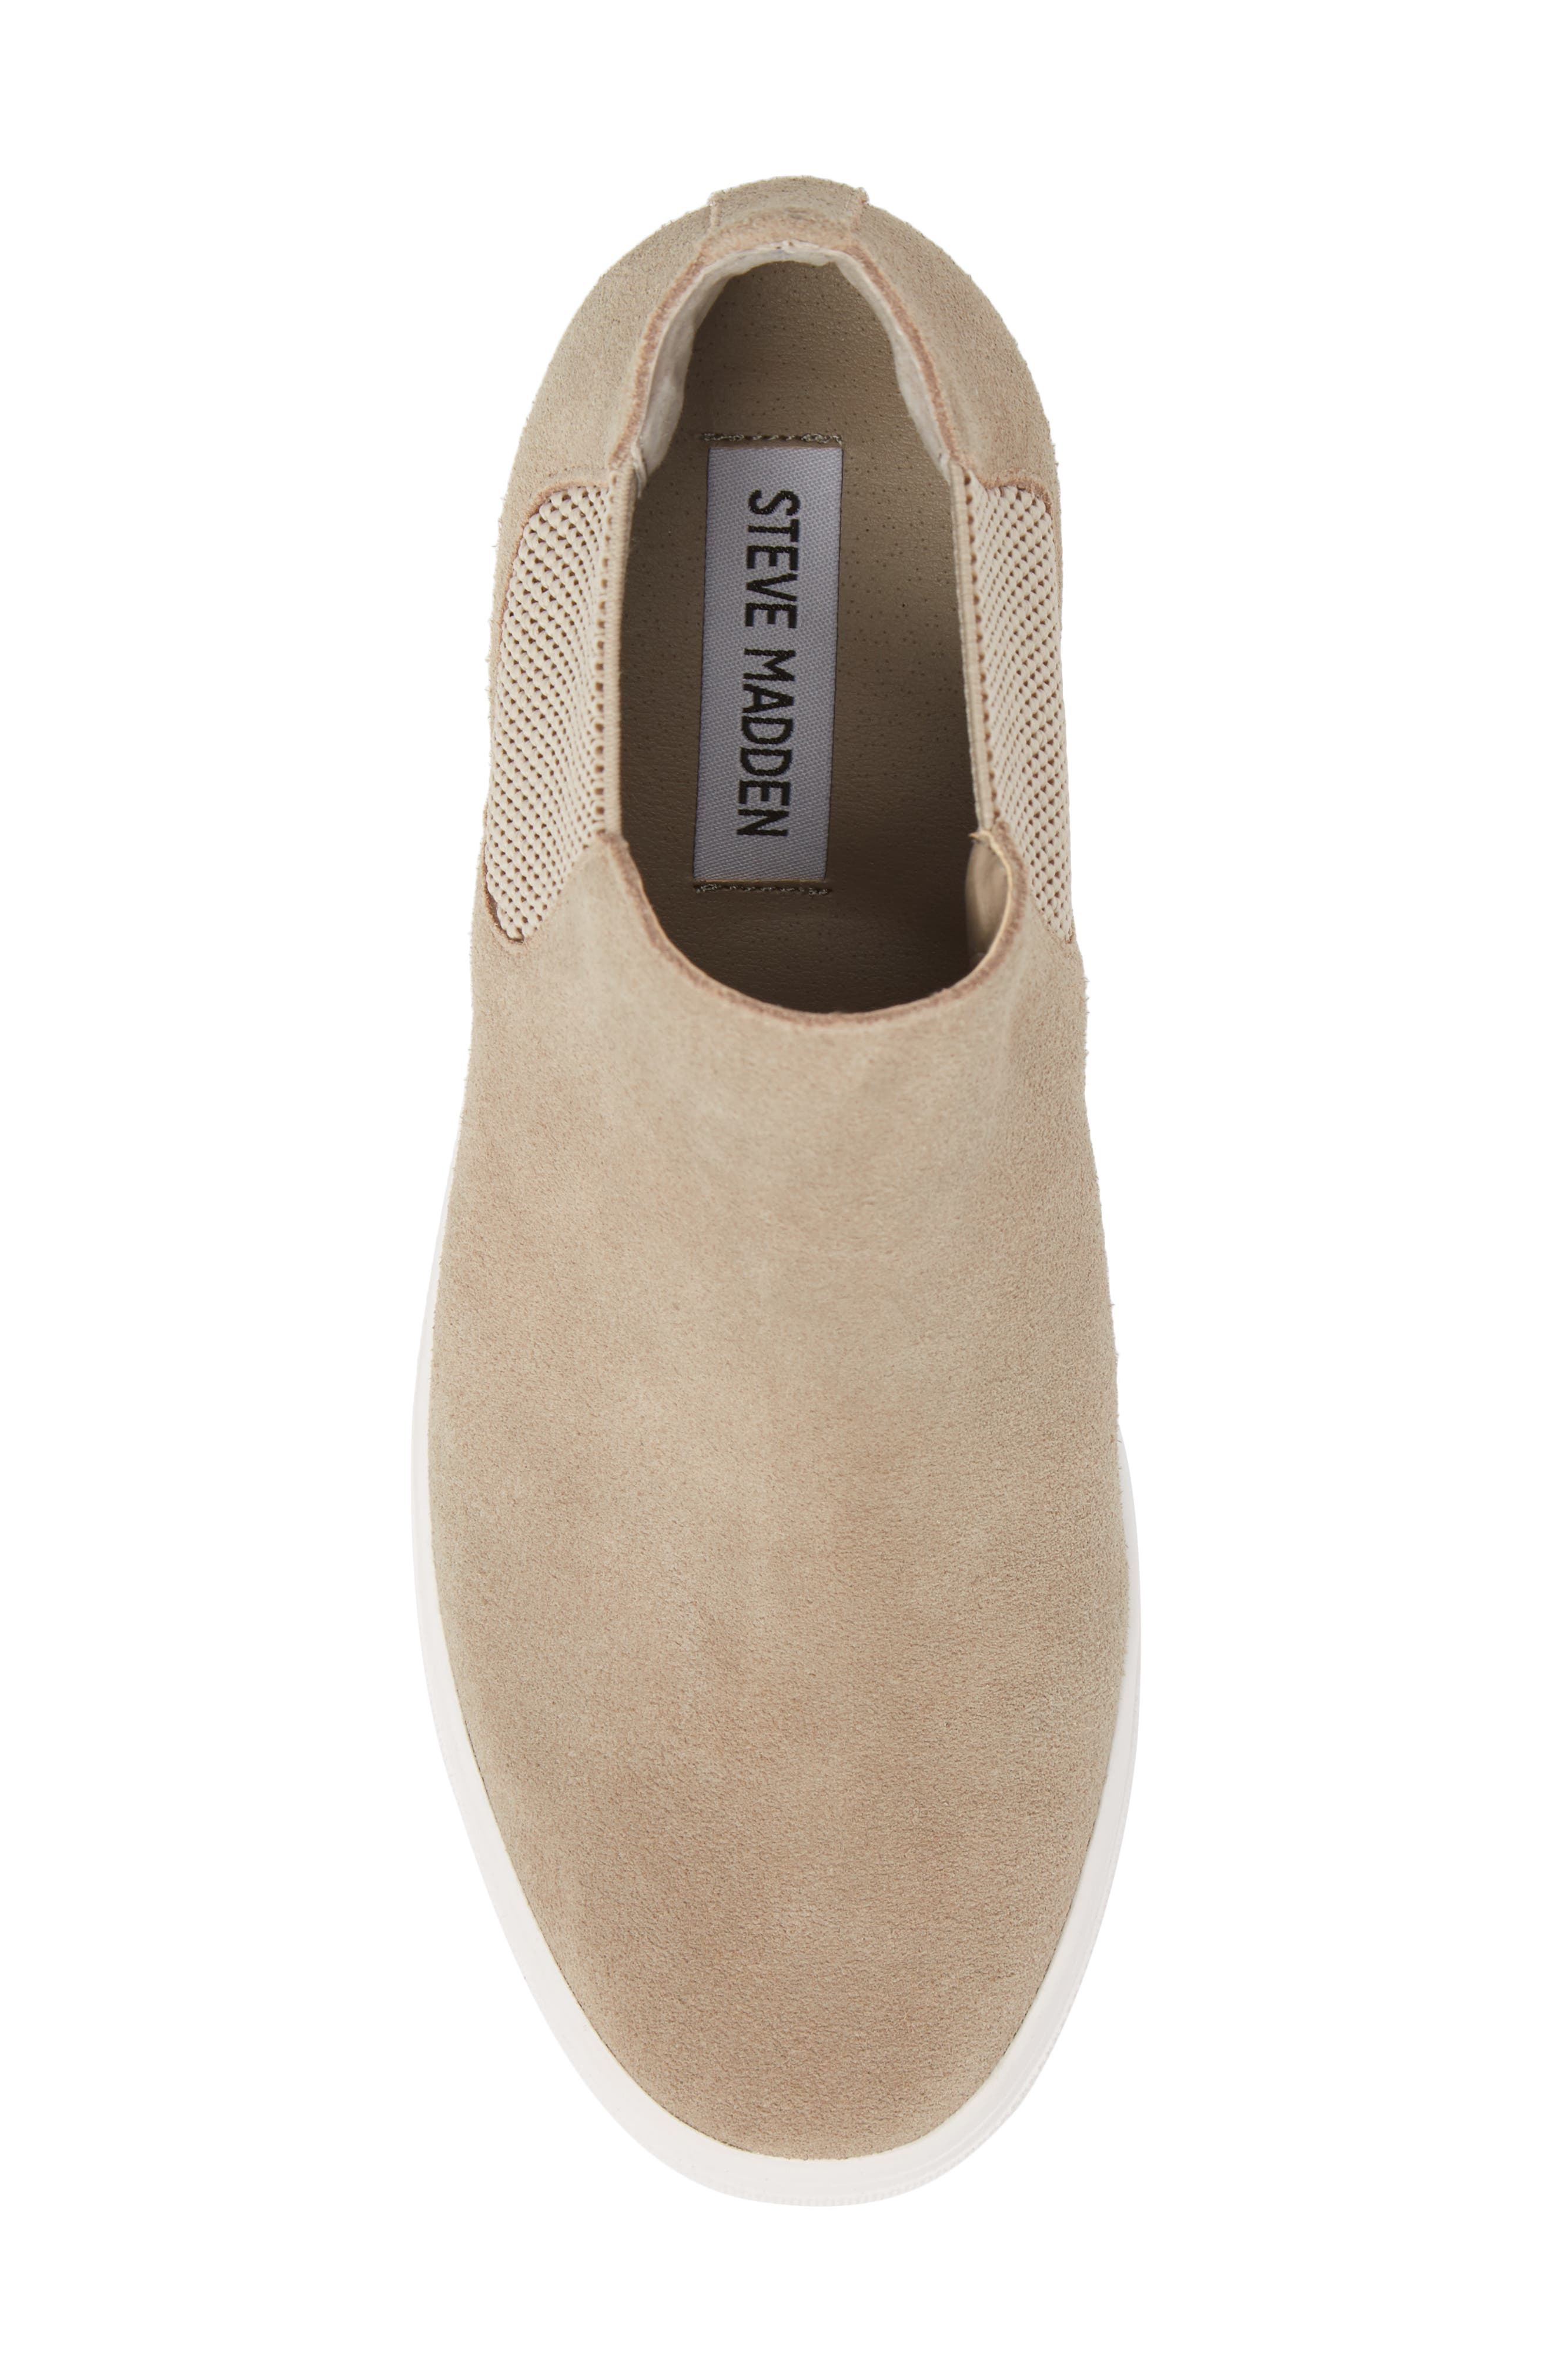 Sultan Chelsea Wedge Sneaker,                             Alternate thumbnail 5, color,                             TAUPE SUEDE